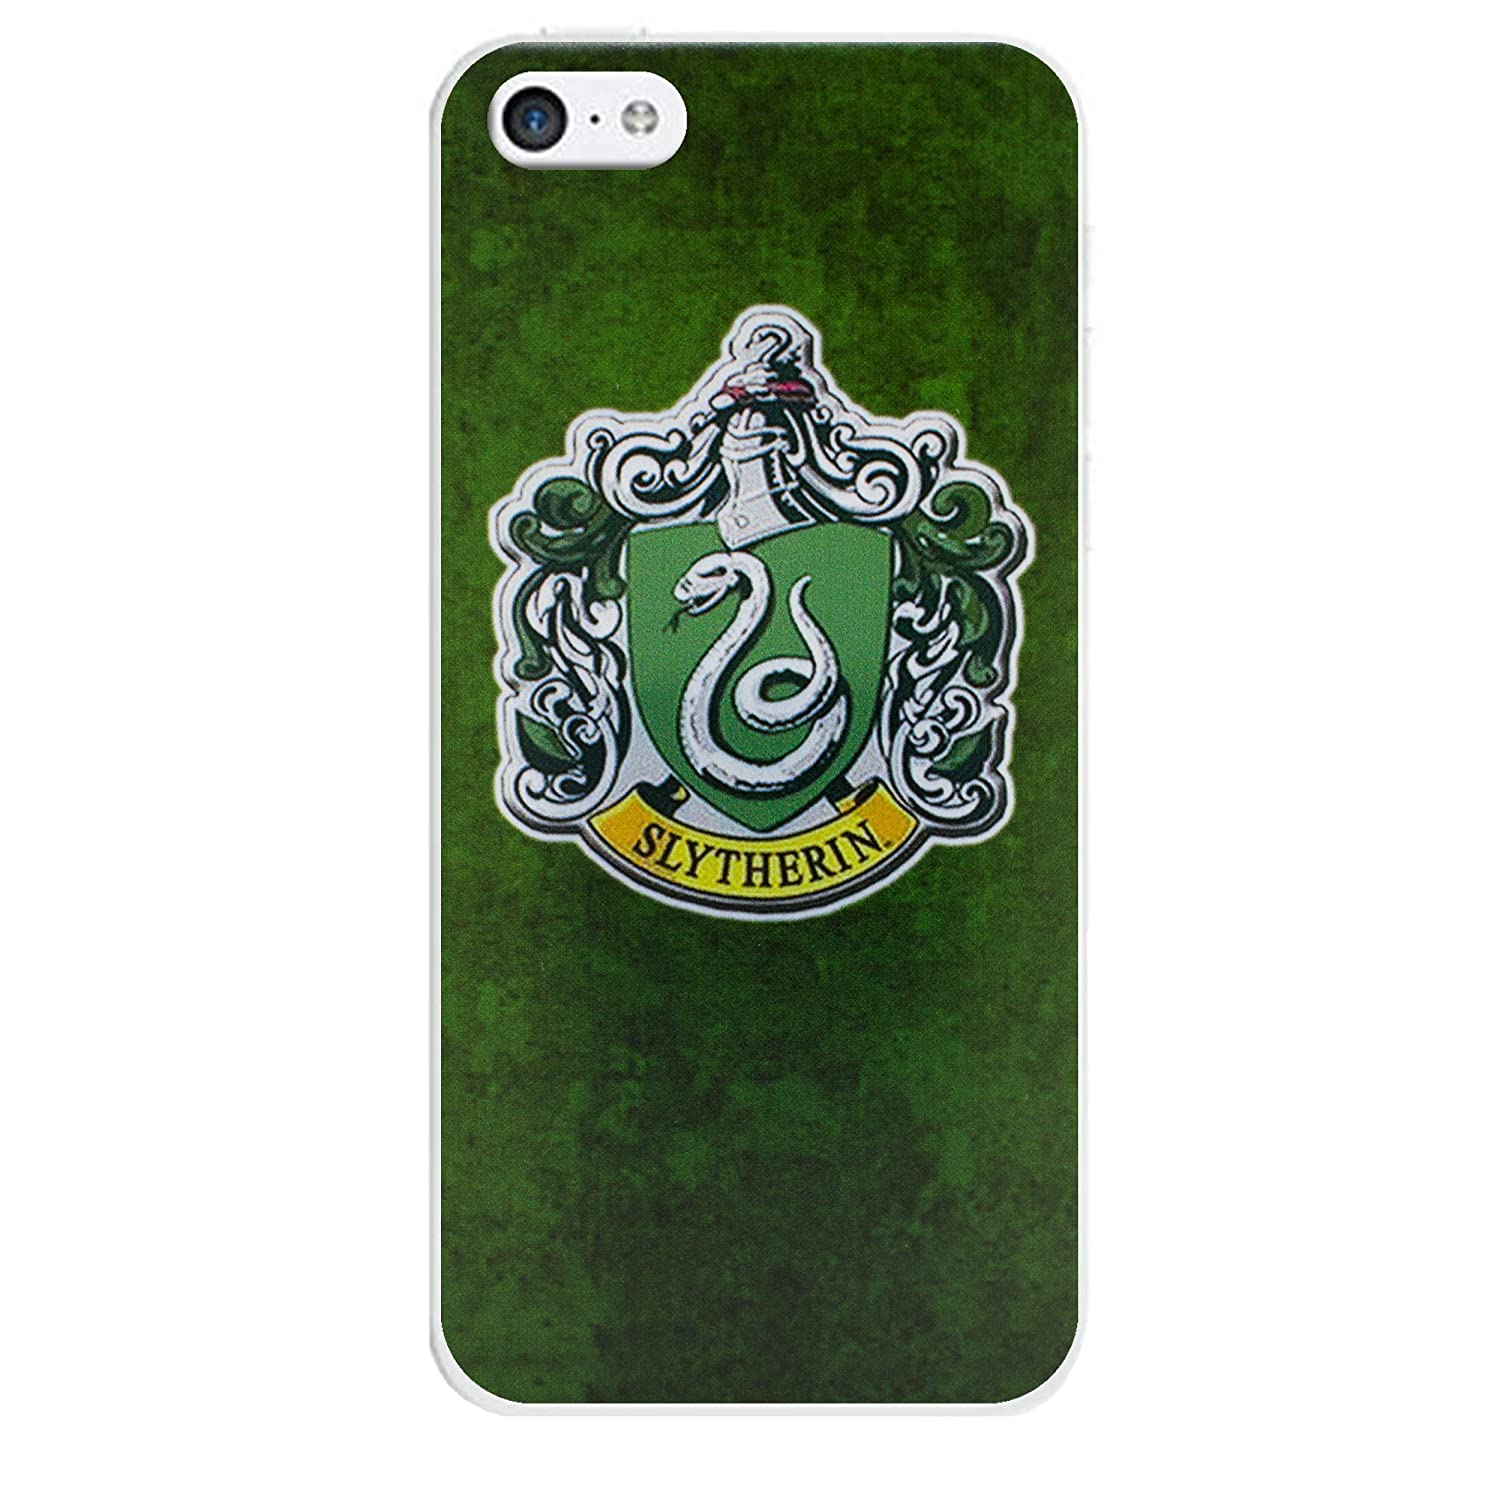 EJC Avenue iPhone Silicona Harry Potter Casas Casos, Slytherin, iPhone 5C